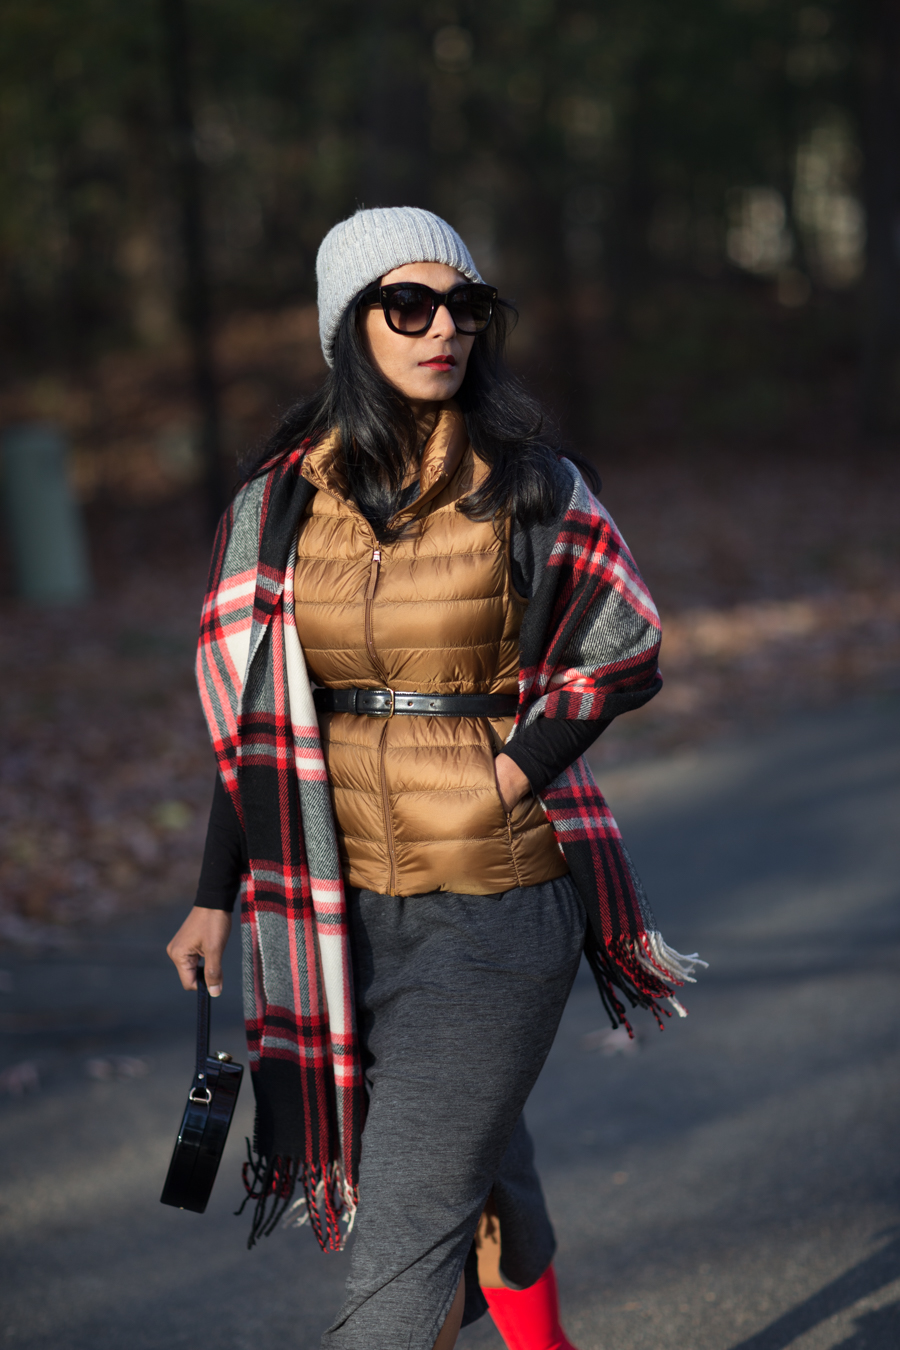 new england style, uniqlo, puffer vest, winter layers, layering tricks, style tips, style advice, petite fashion